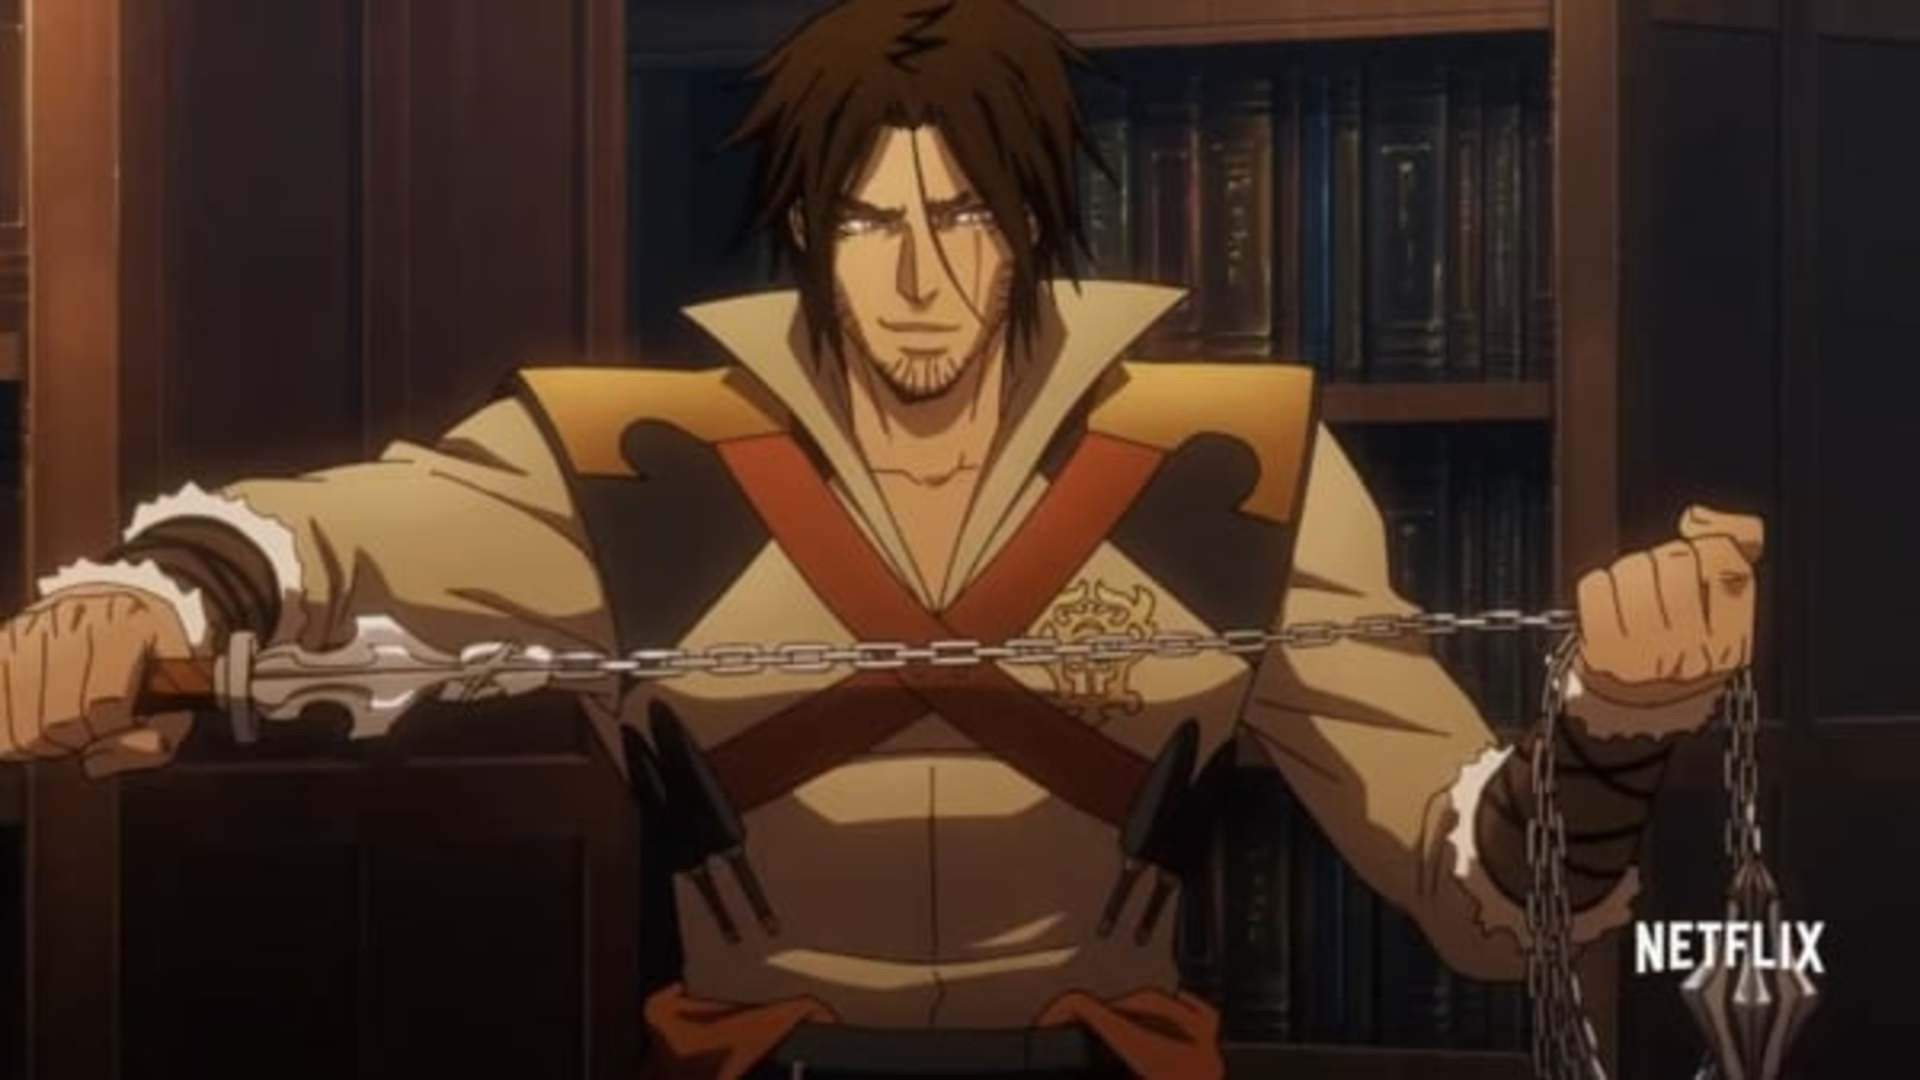 Pin by BronekGamingTv on Castlevania Trevor belmont